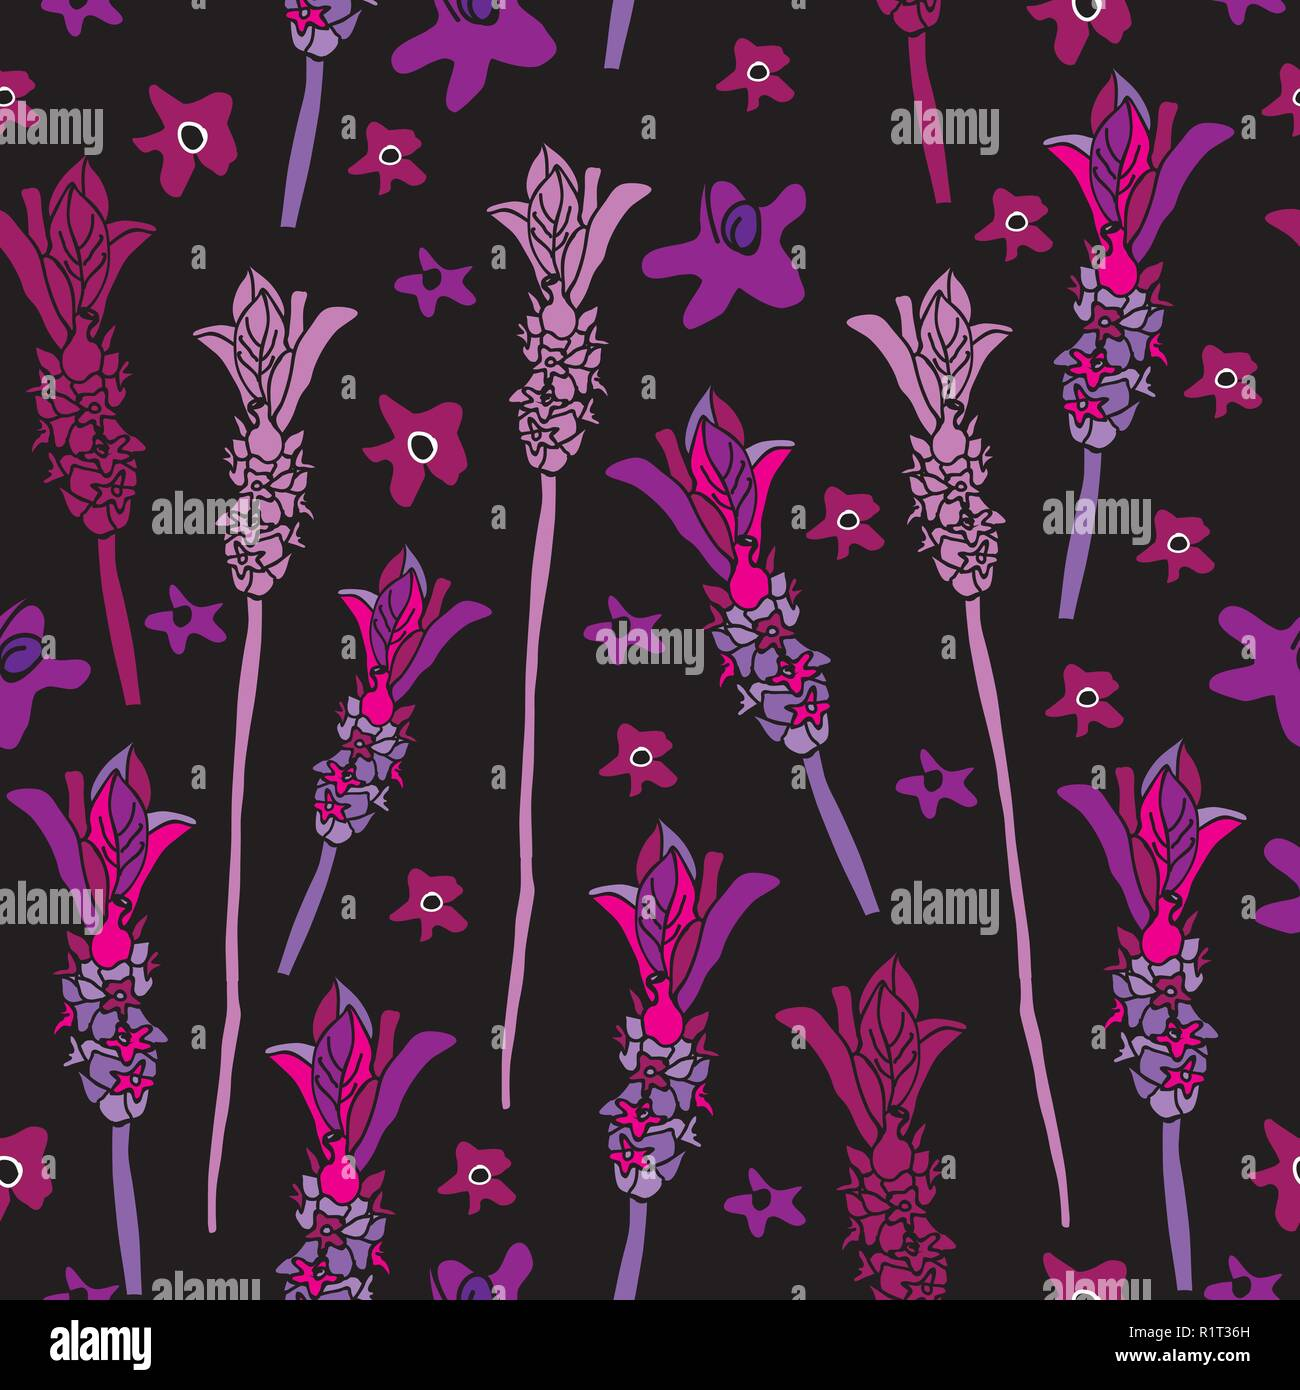 818fdf22c9fd French Lavender-Love in Parise Seamless Repeat Pattern on Black Background  . Light Pink and White Colors.